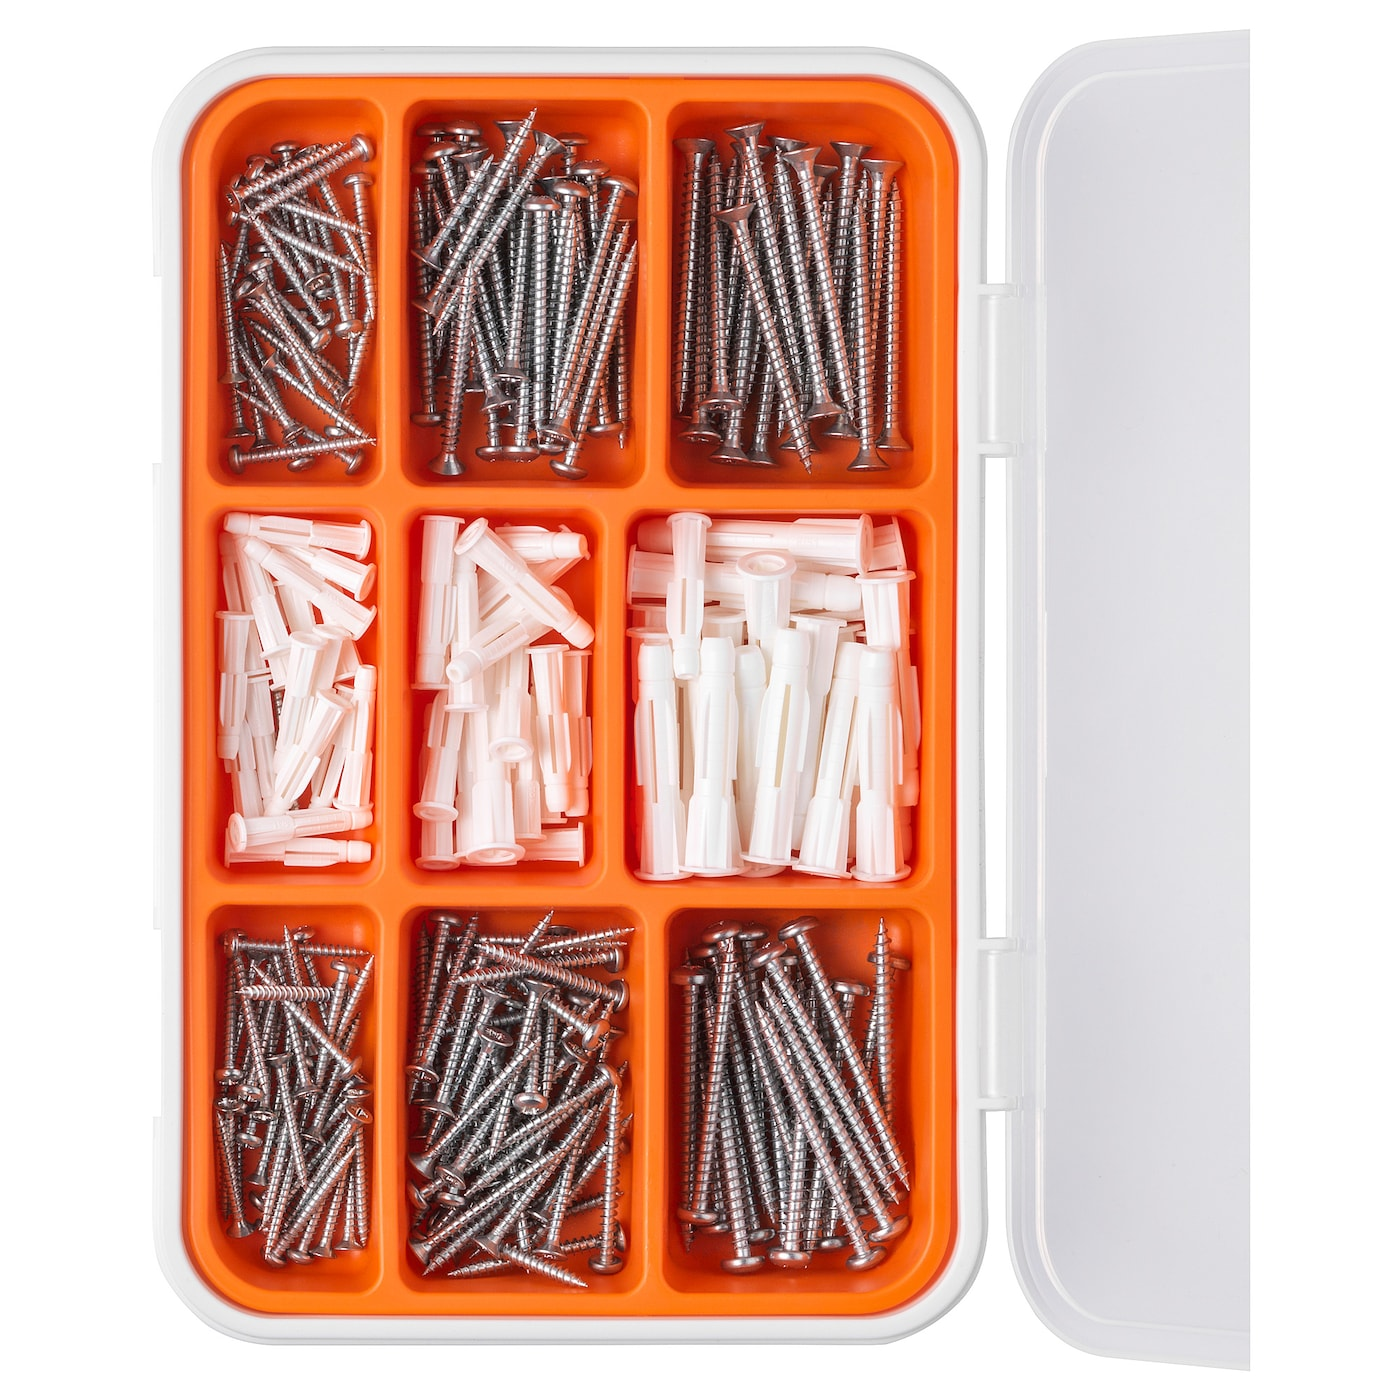 IKEA FIXA 260-piece screw and plug set